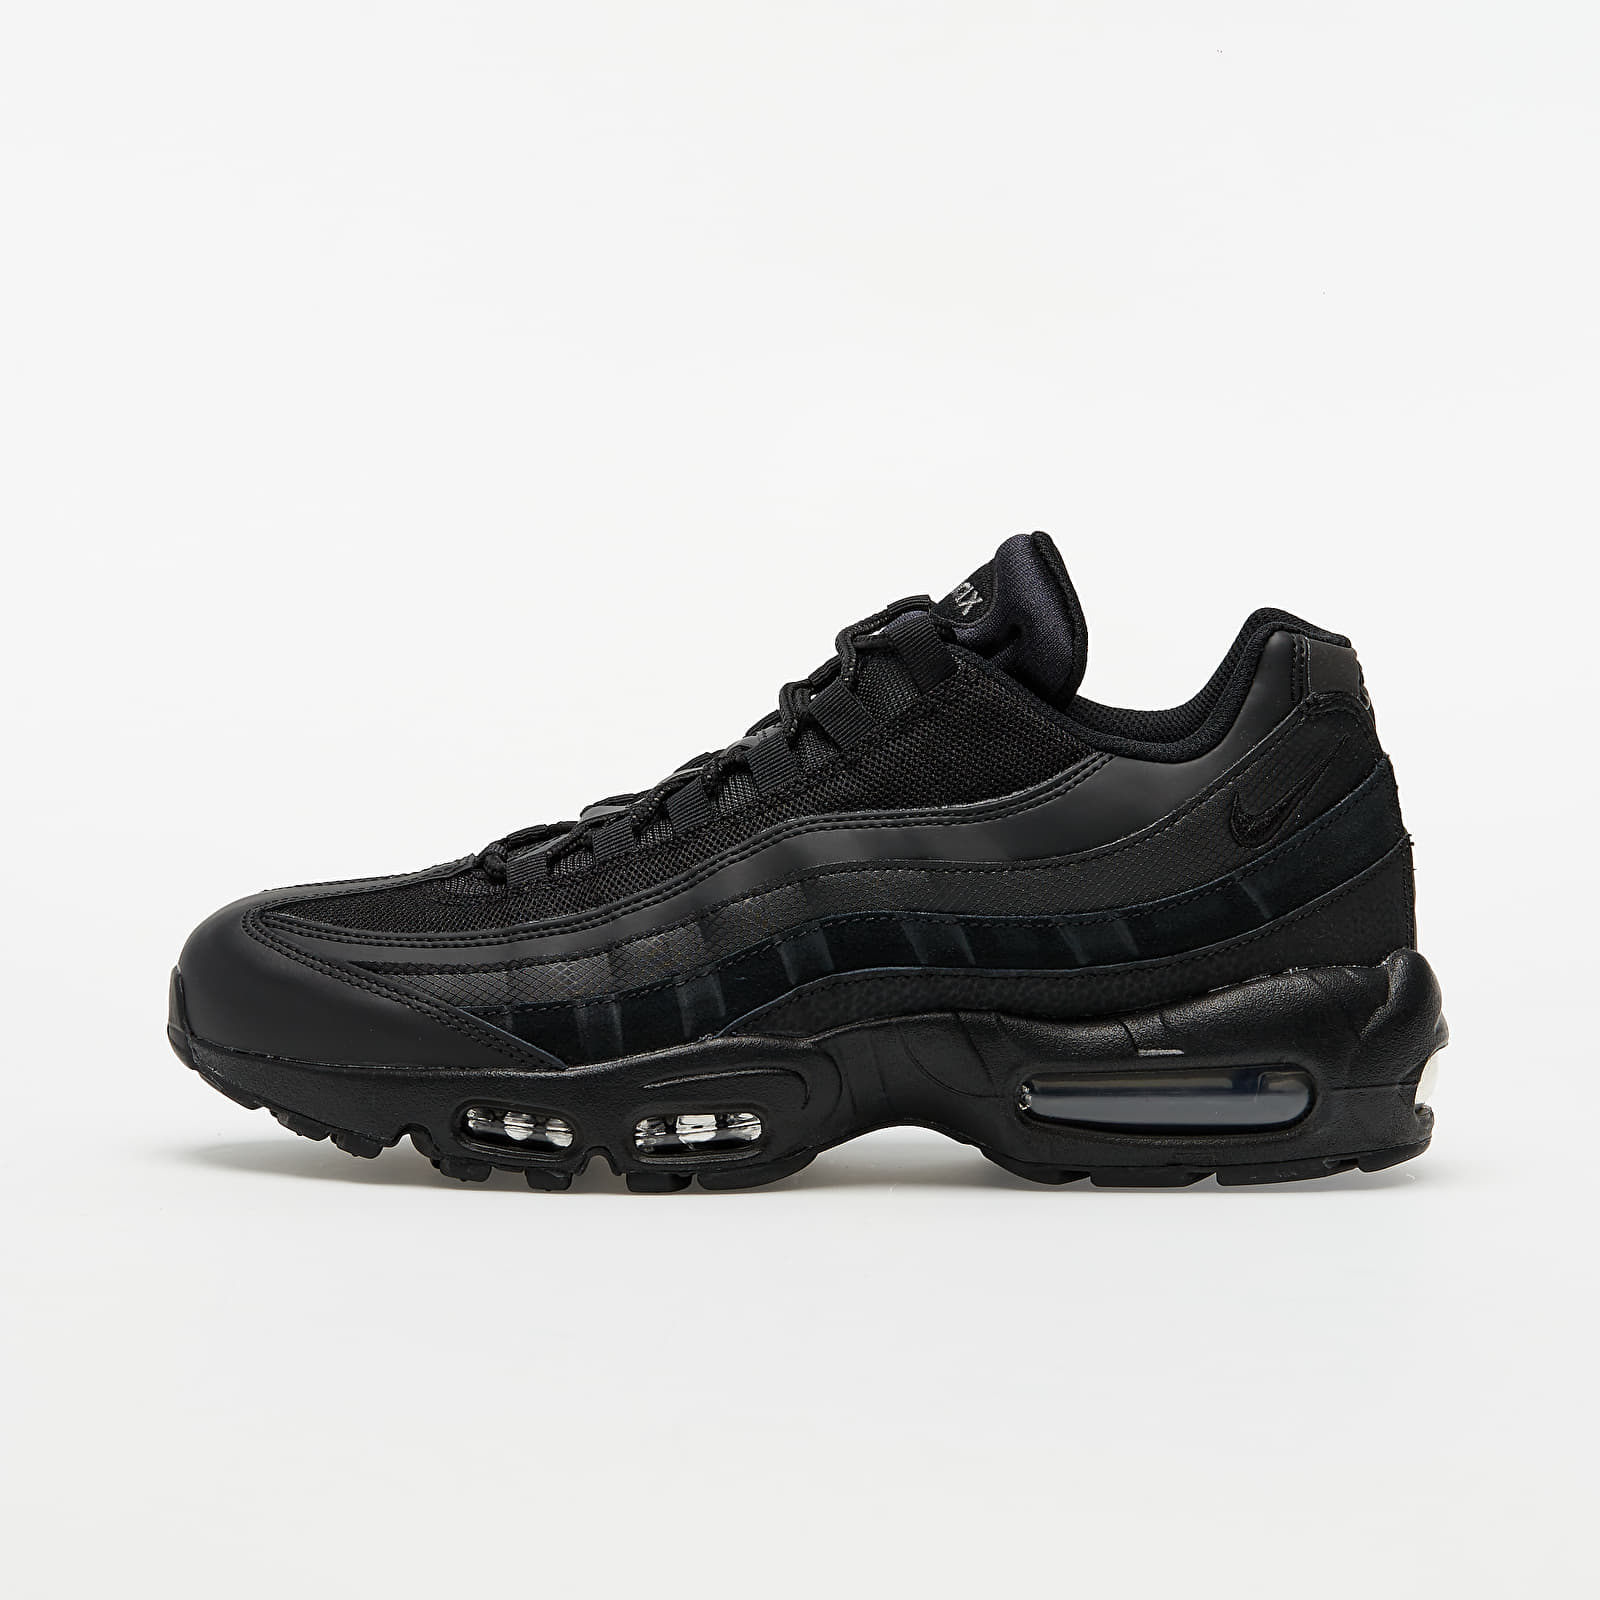 Nike Air Max 95 Essential Black/ Black-Dark Grey EUR 41